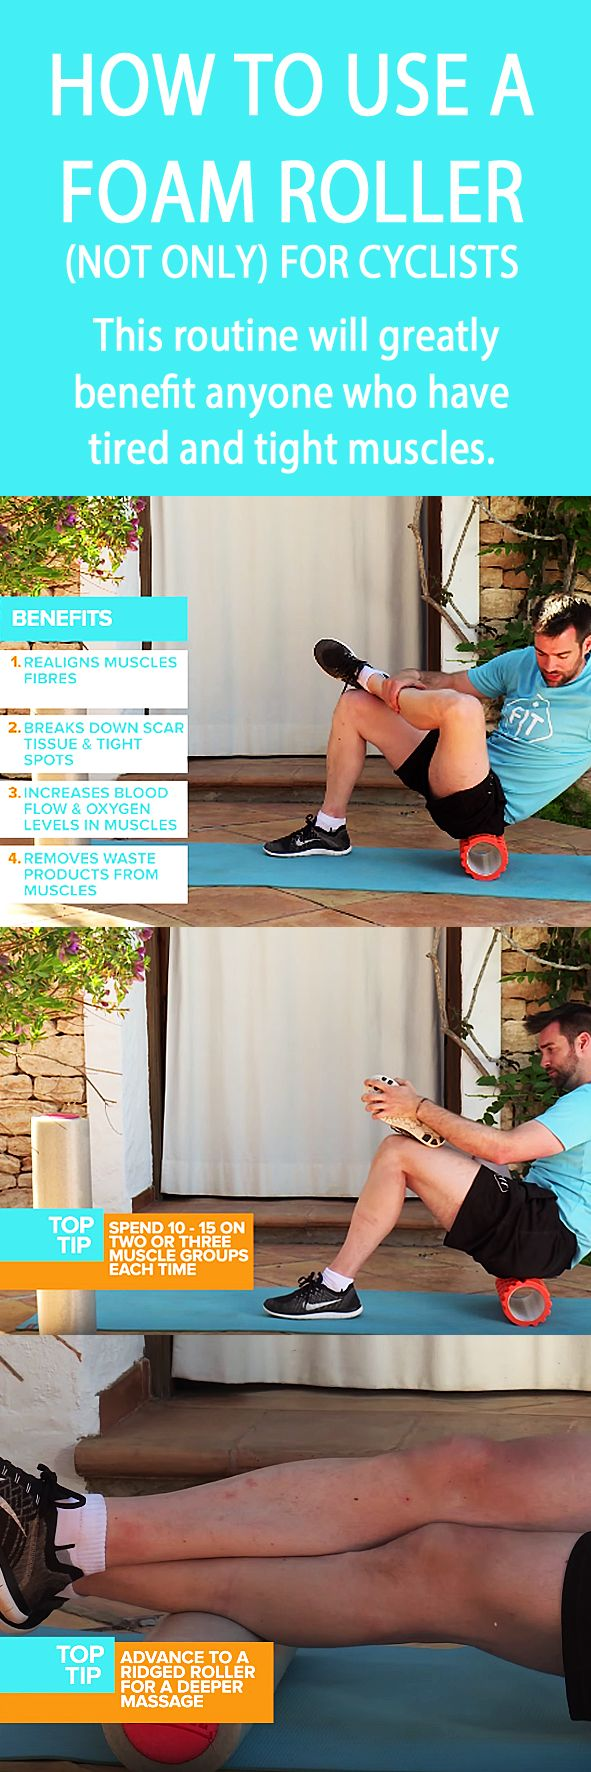 .How to use a FOAM ROLLER (not only) for cyclists. #foamrolling #cyclingtips #tightmuscles #musclerecovery #tightmuscles